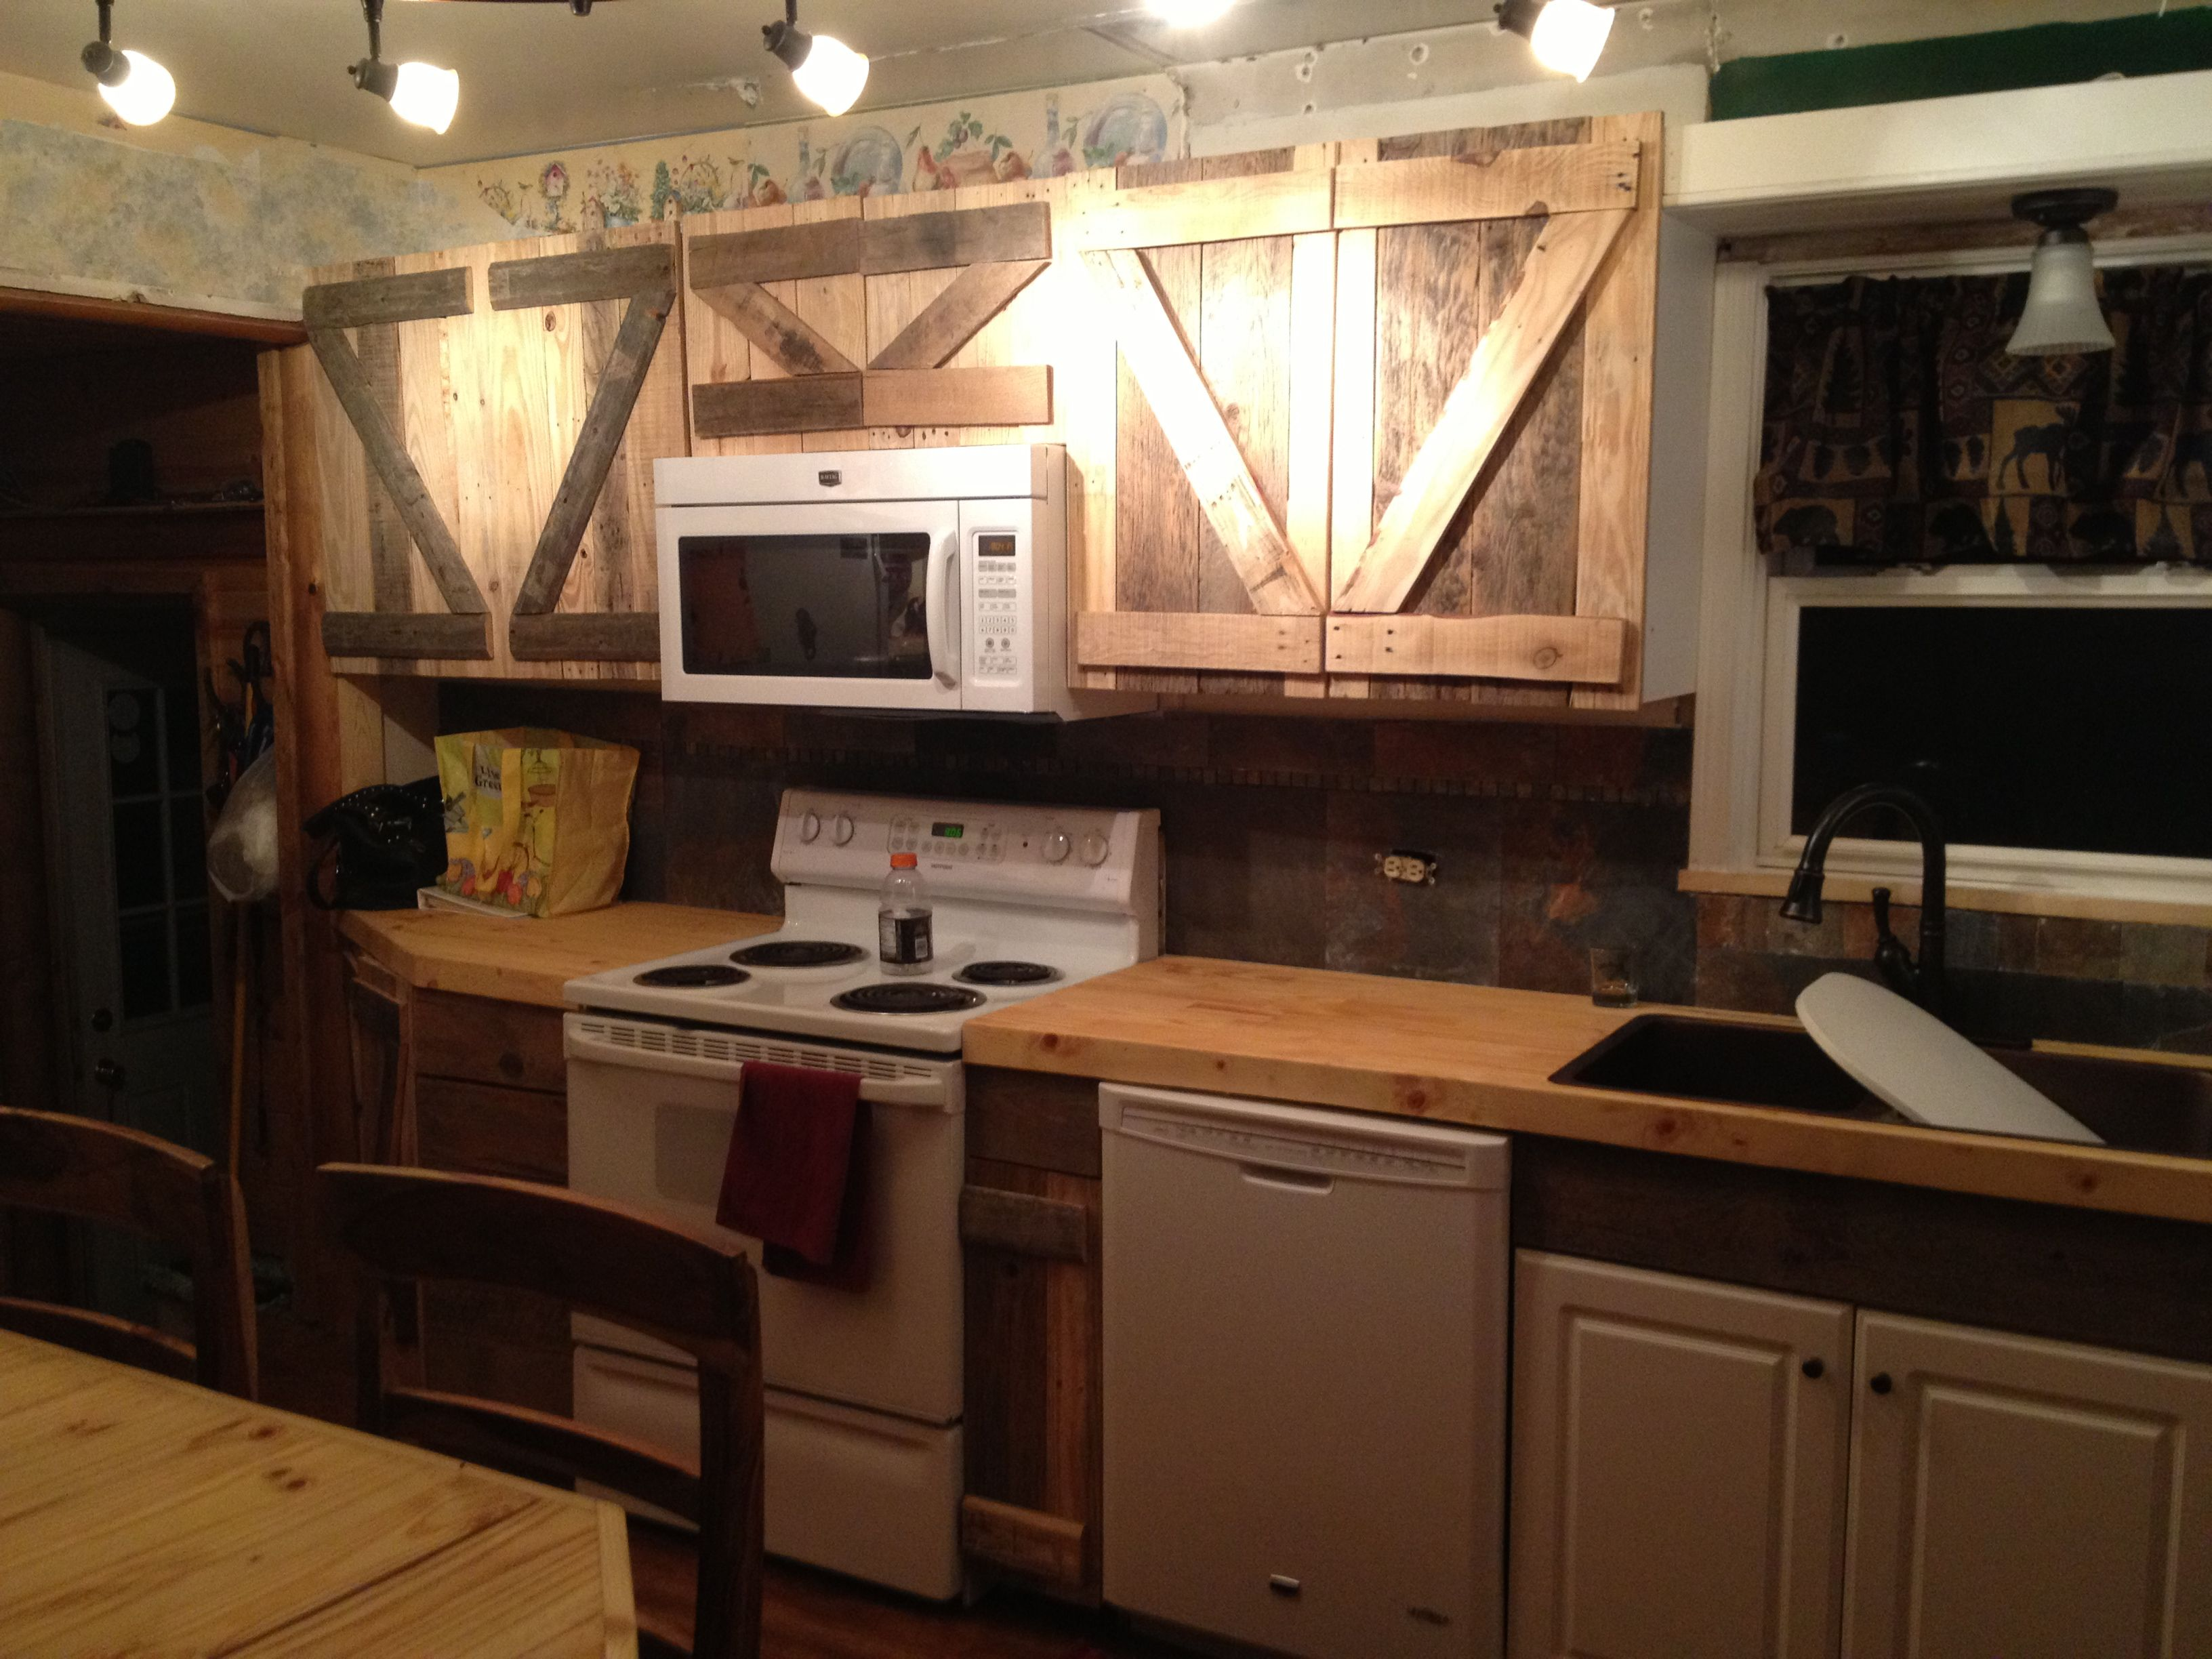 Using wood pallets to get the rustic look in our kitchen ...